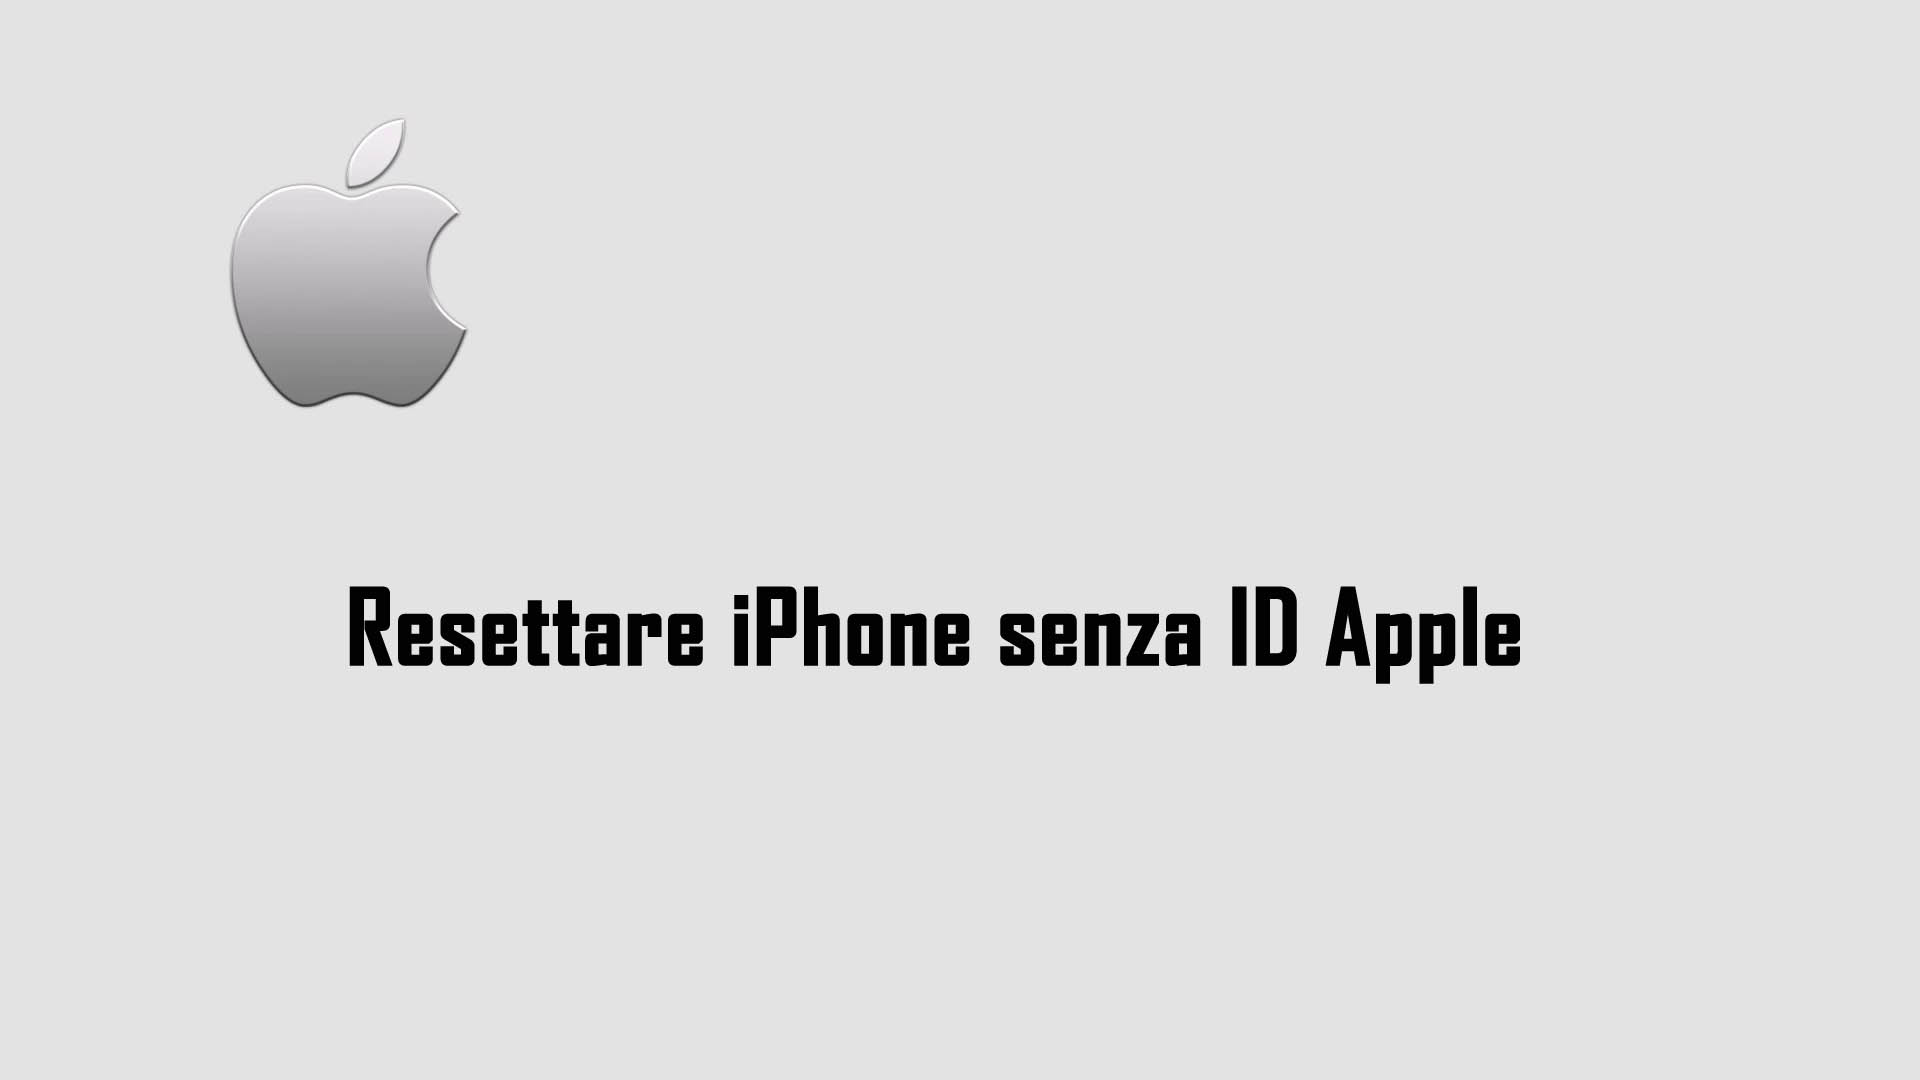 Resettare iPhone senza ID Apple